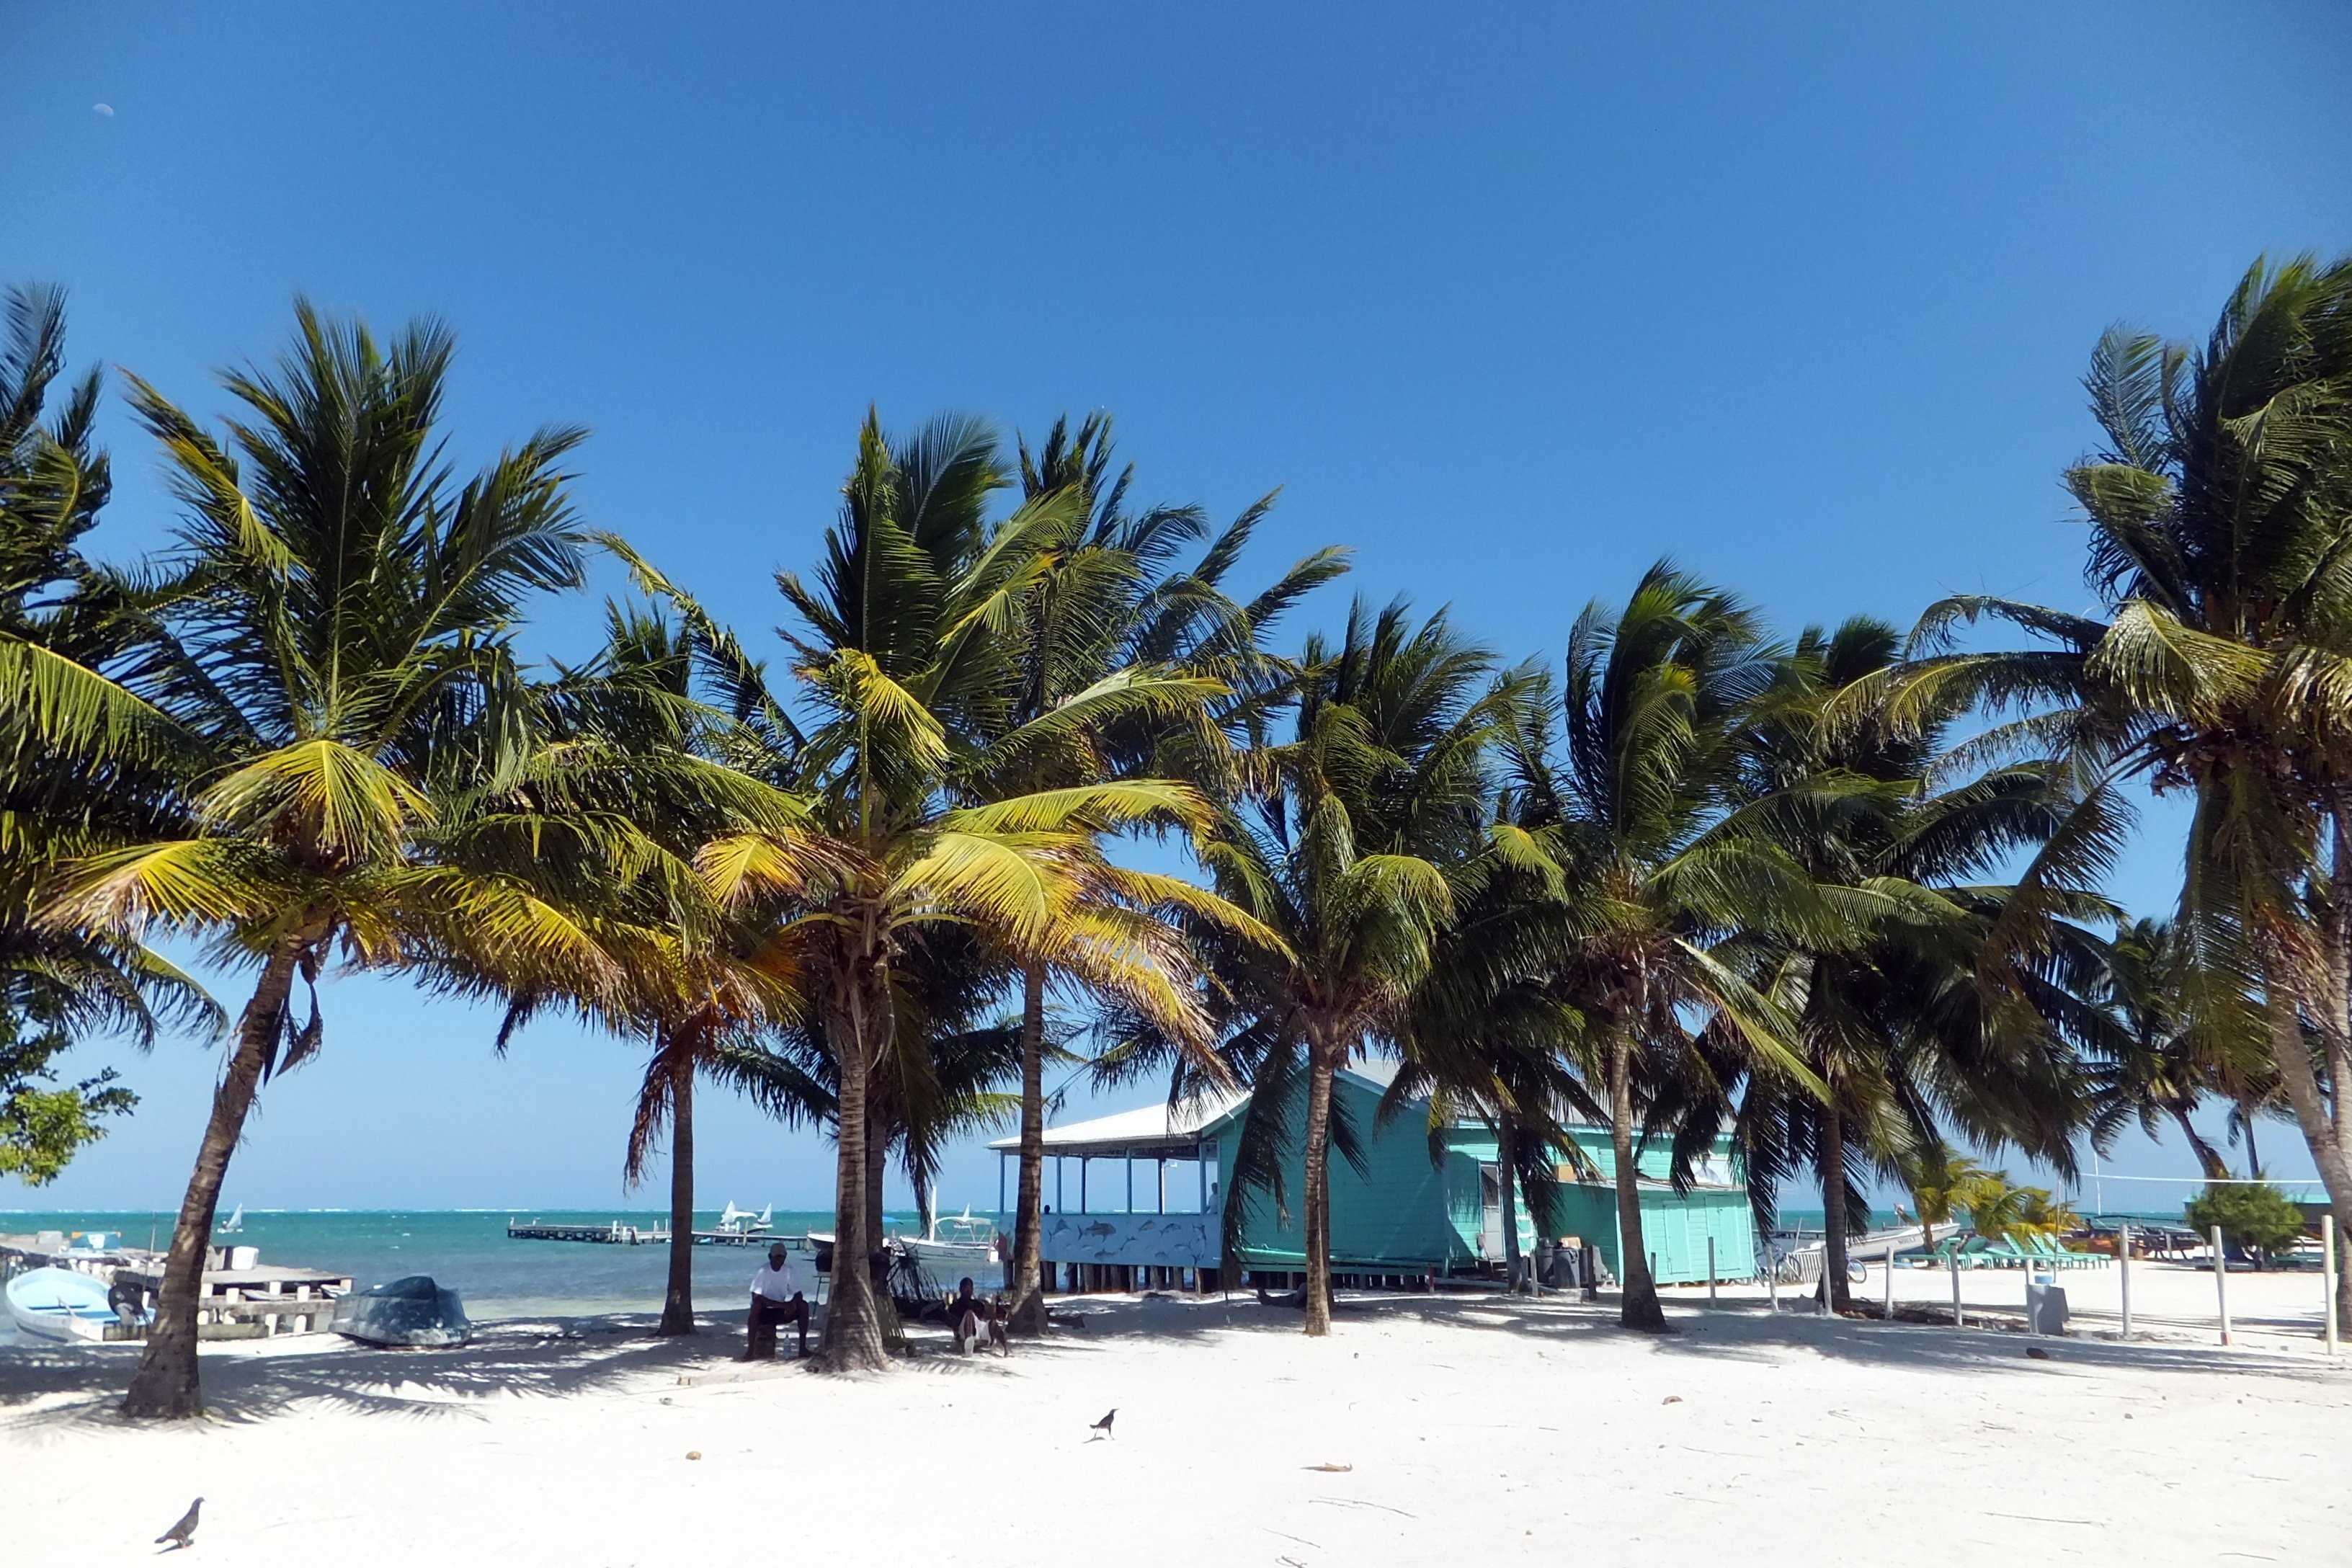 Palm trees swaying in the carribbean island of Caye Caulker - a photo blog of Belize